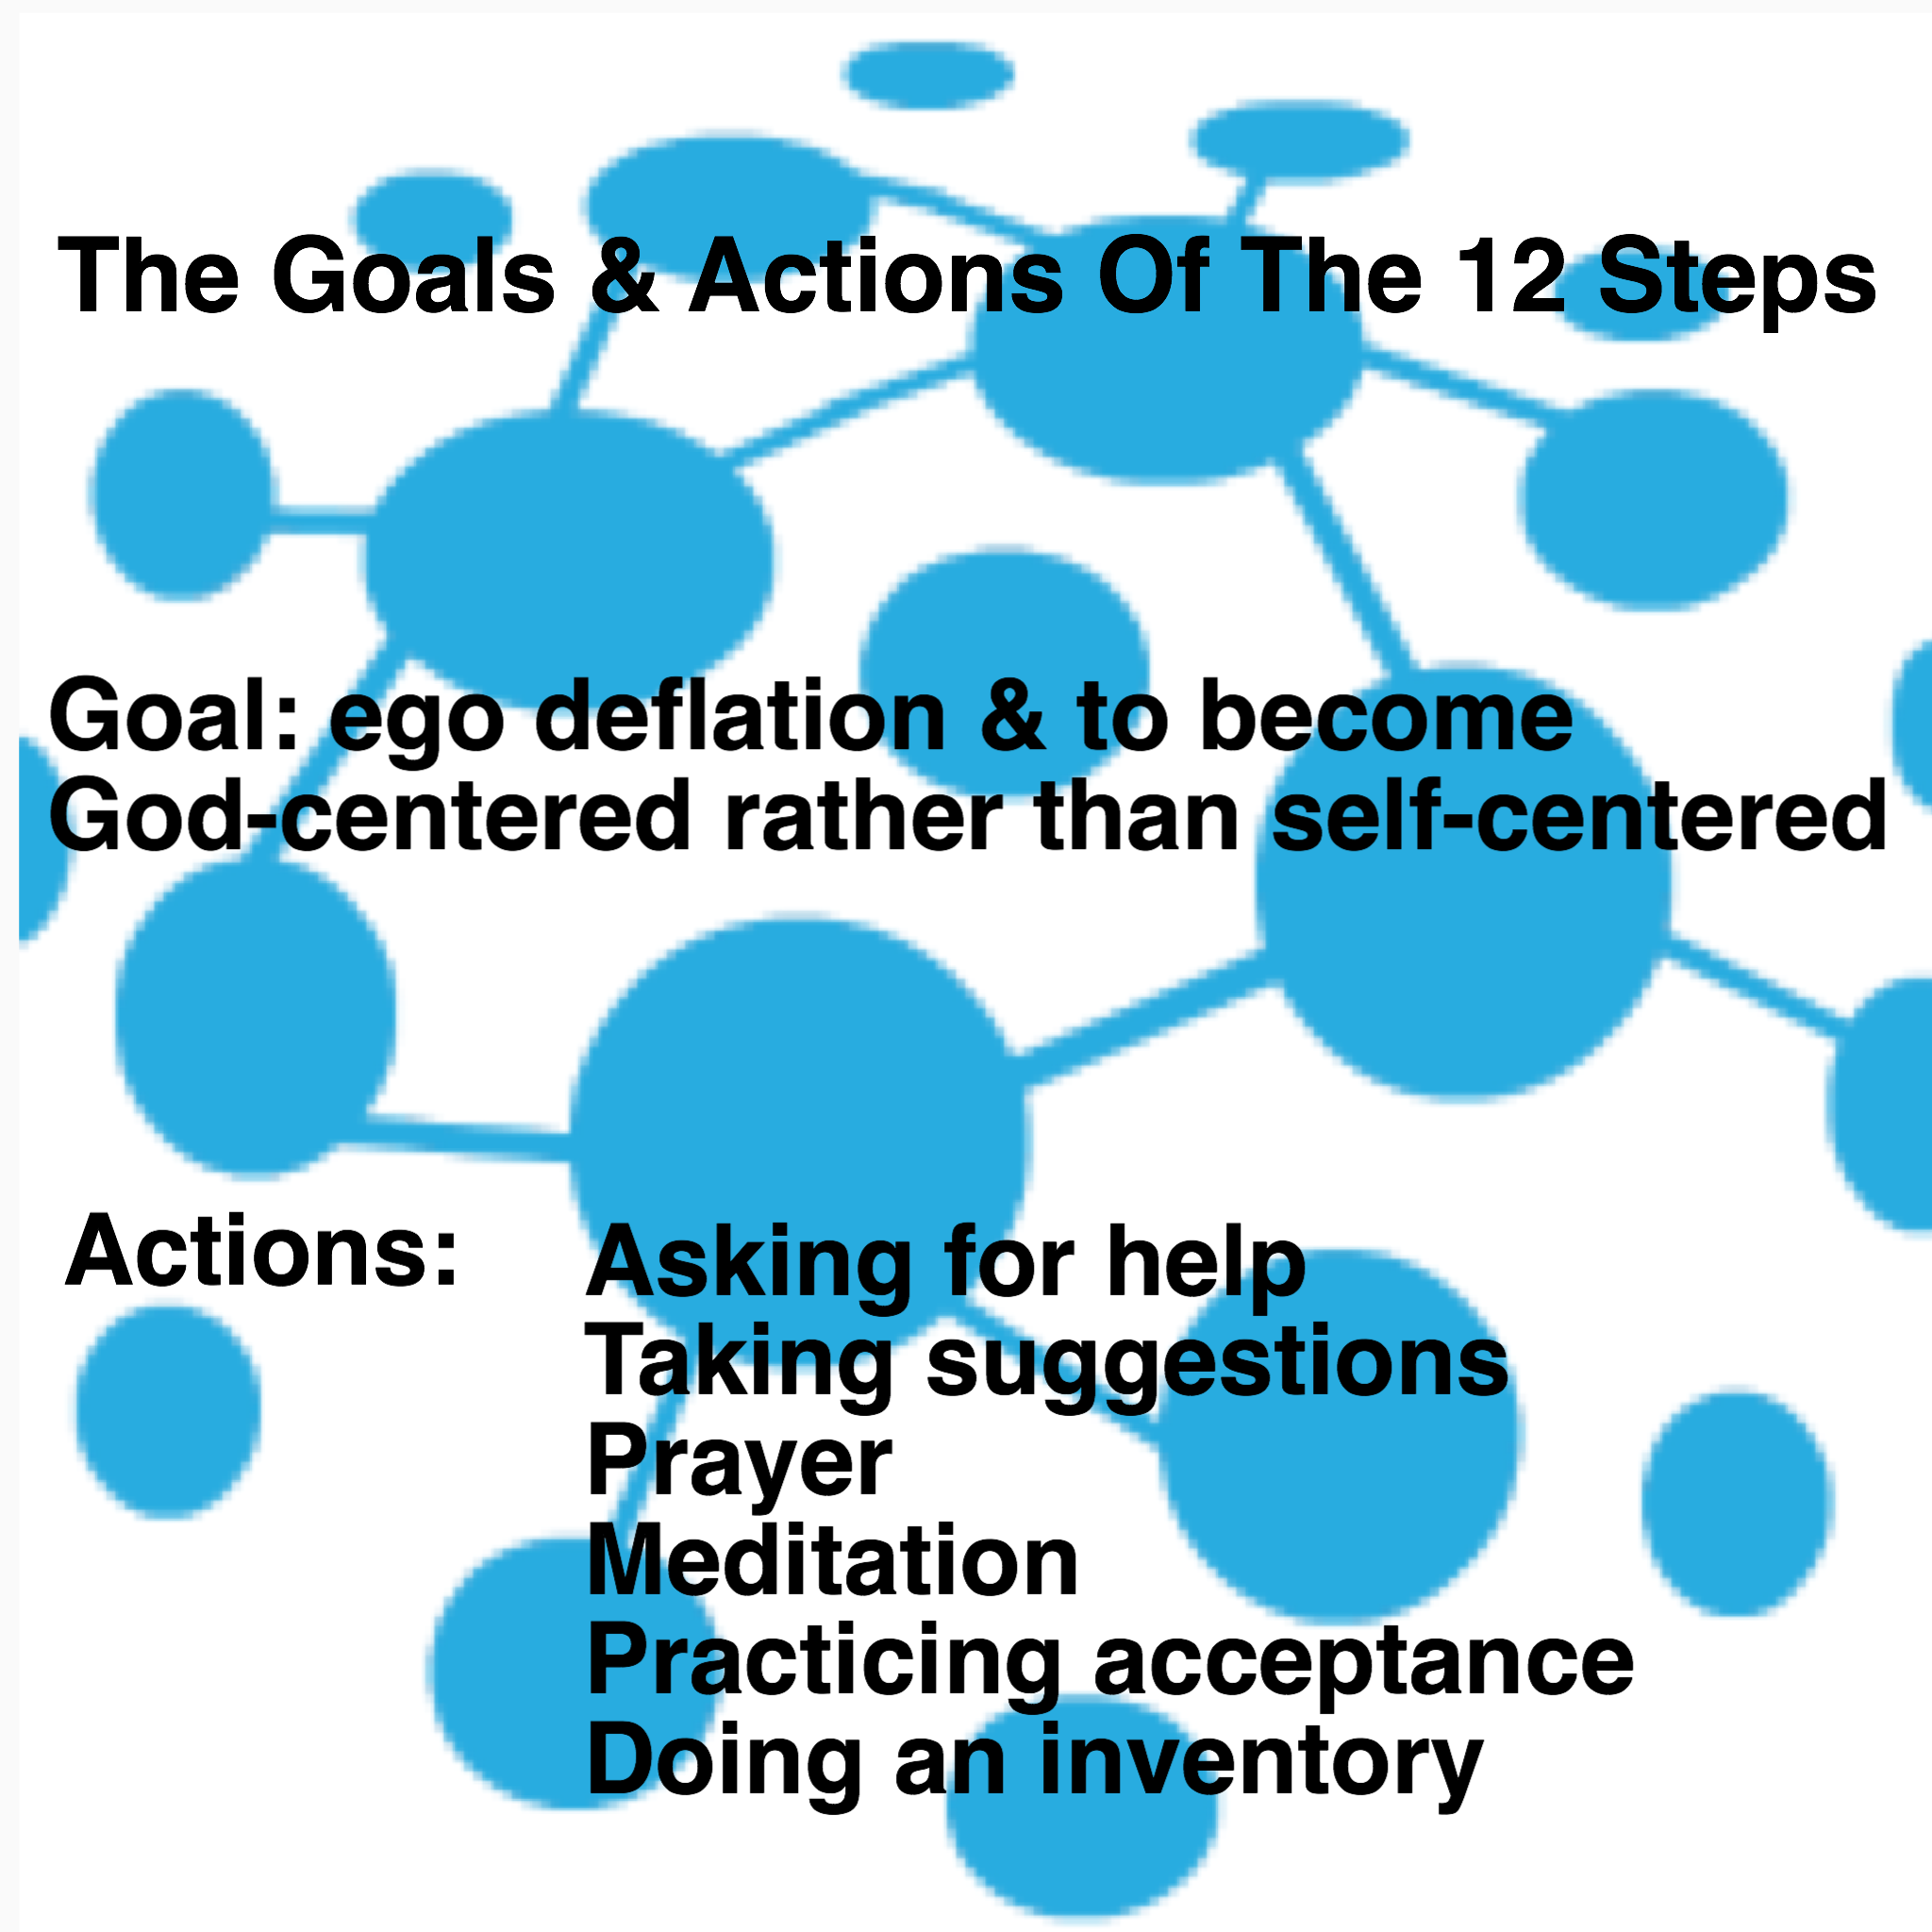 The goals & actions of the 12 Steps